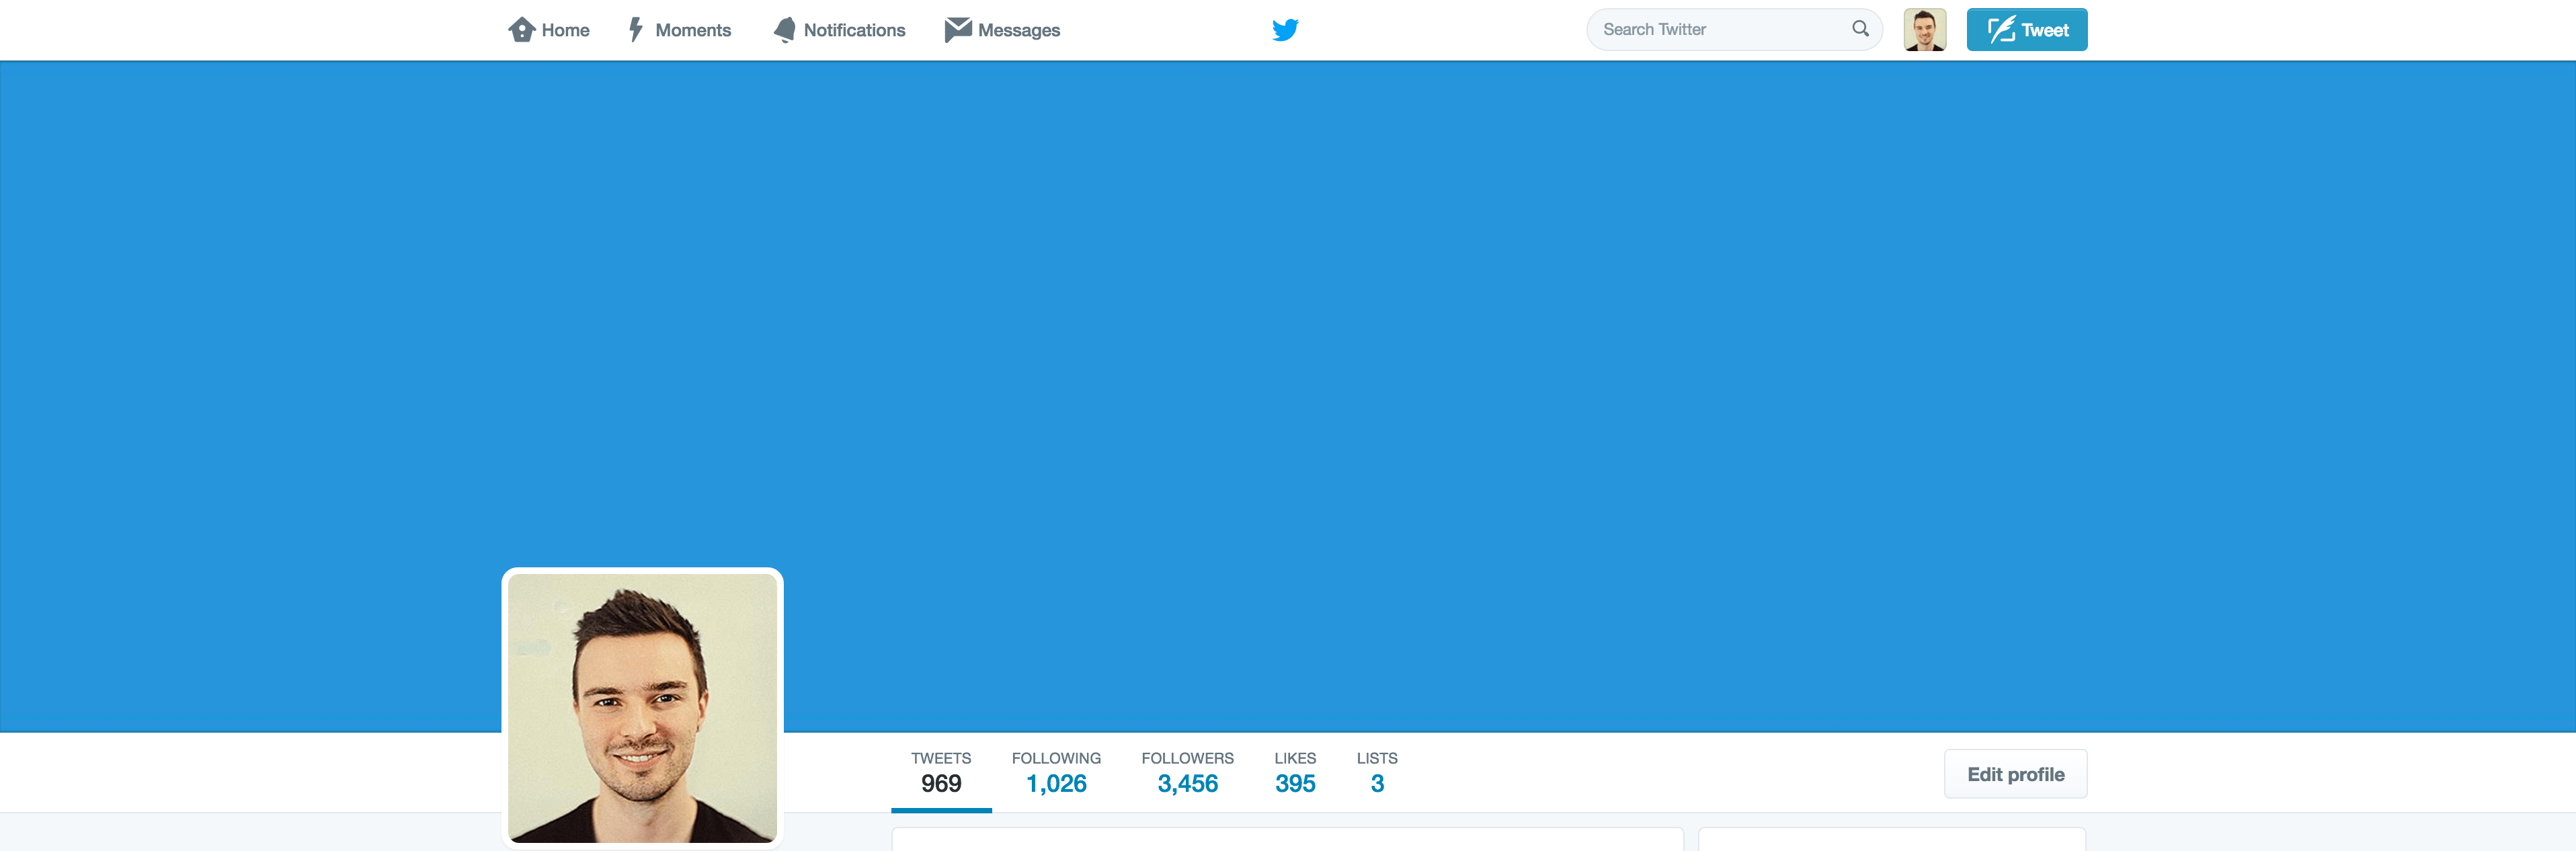 Twitter header dimensions after uploading